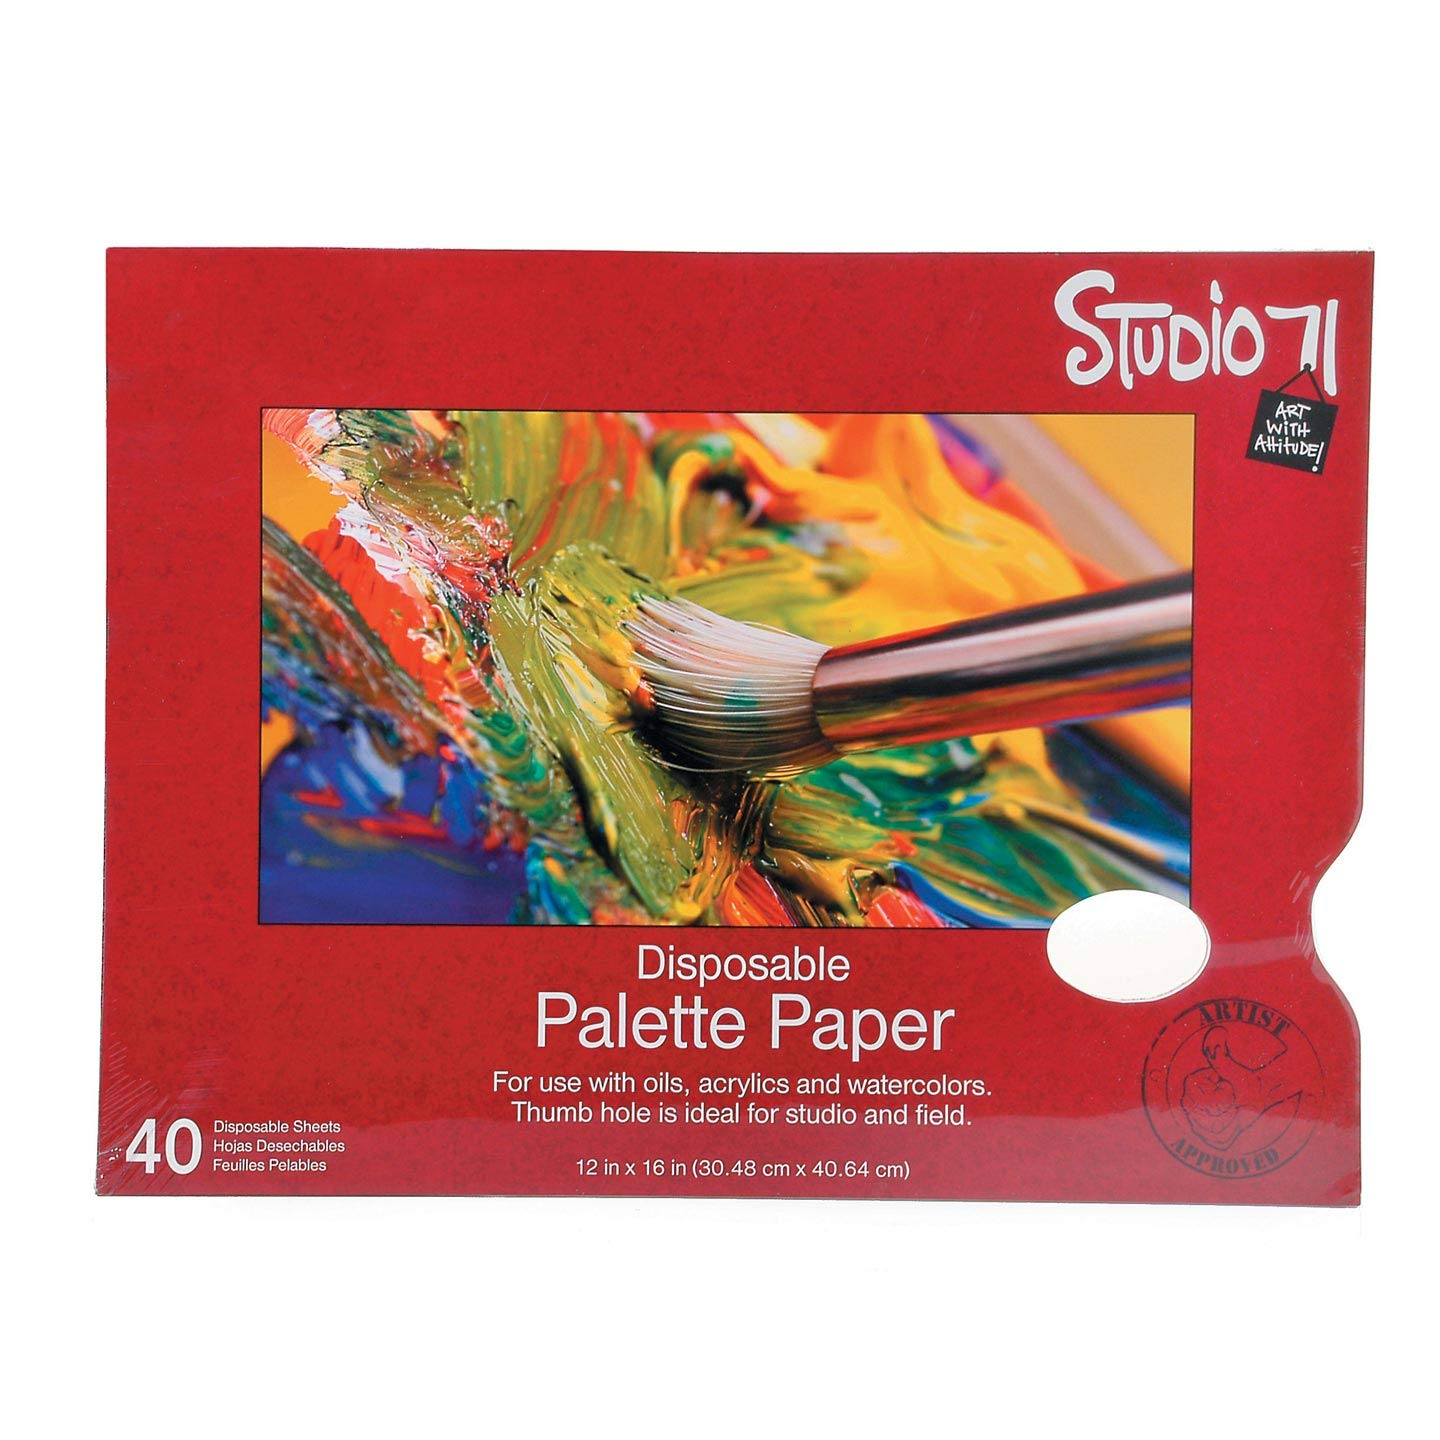 Bulk Buy: Darice DIY Crafts Studio 71 Palette Pad with Hole 12 x 16 inches 40 Sheets (12-Pack) 97490-12